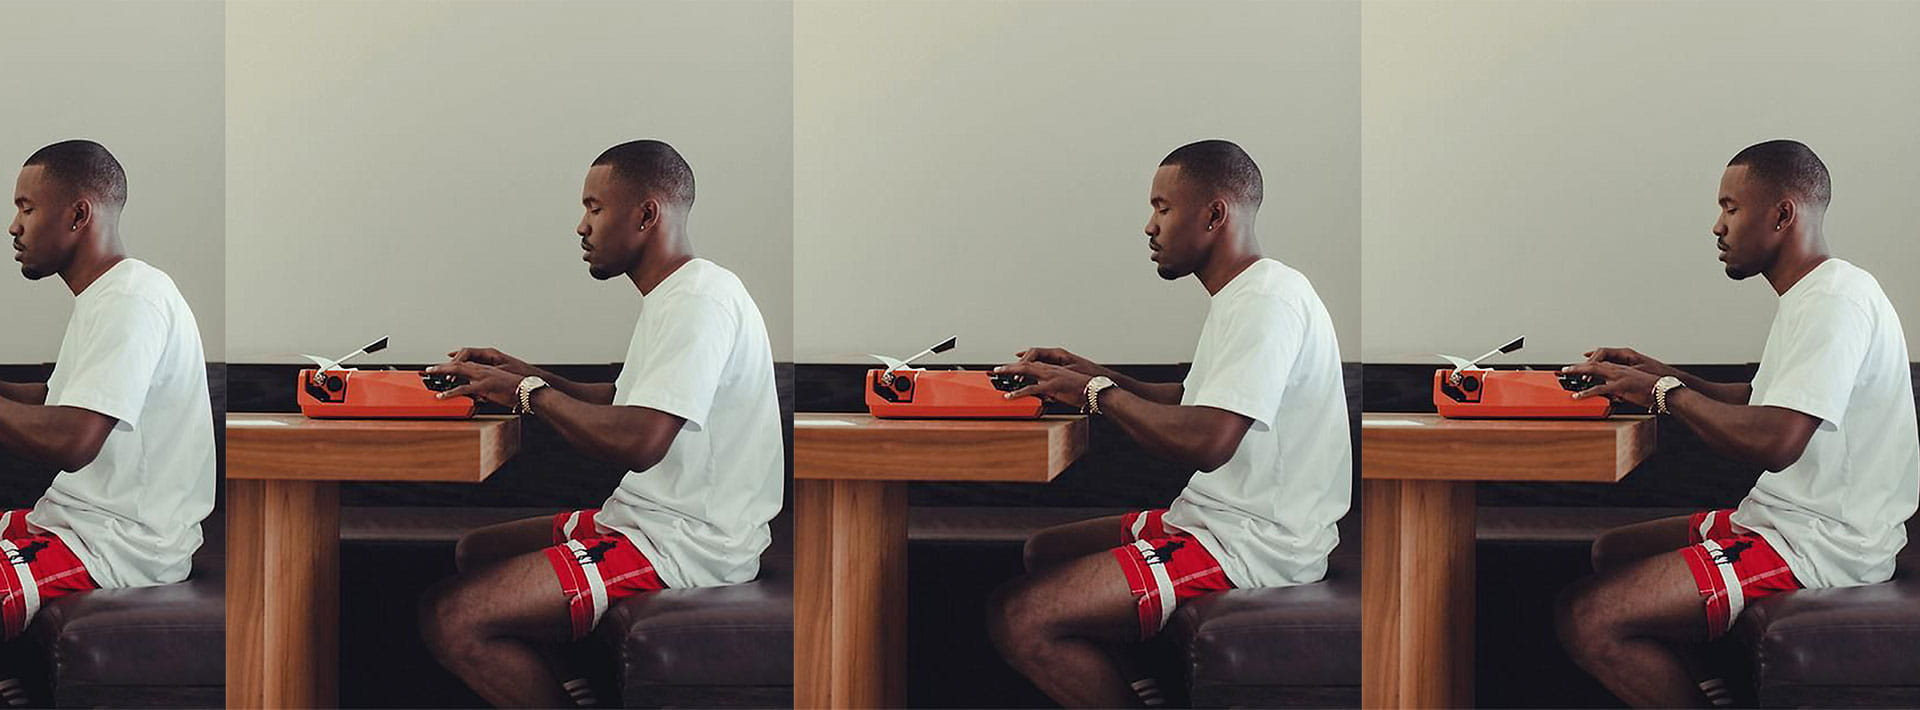 Biggest wish is knowing what's on Frank Ocean's typewriter.